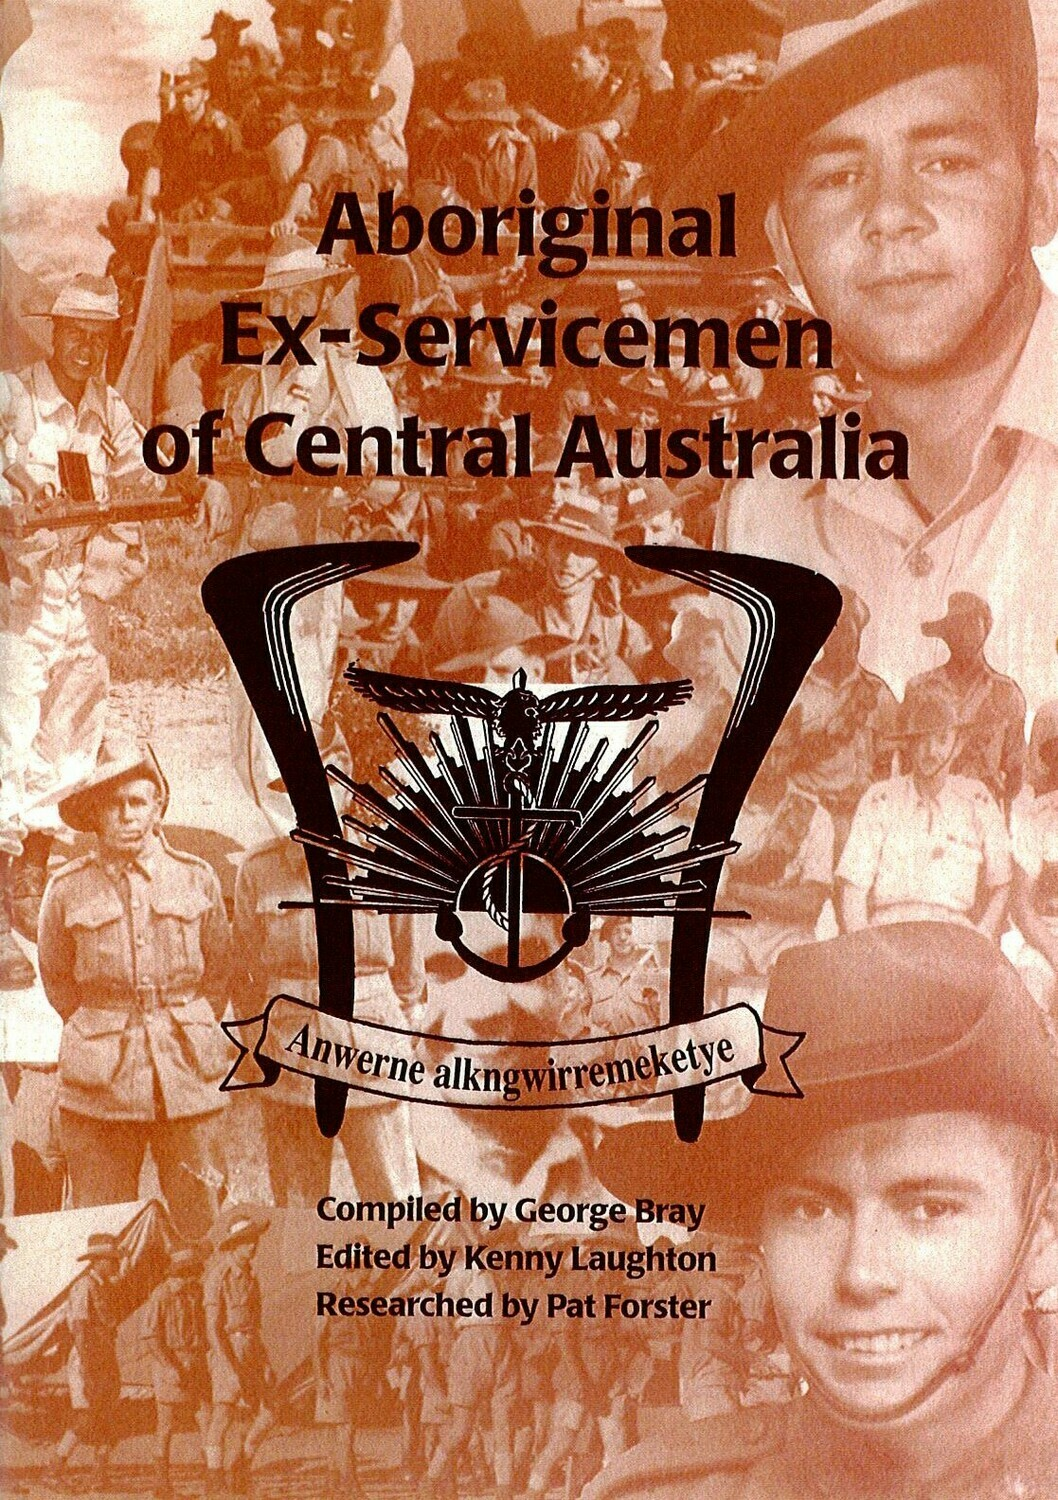 Aboriginal Ex-servicemen of Central Australia by George Bray, Kenny Laughton and Pat Forster